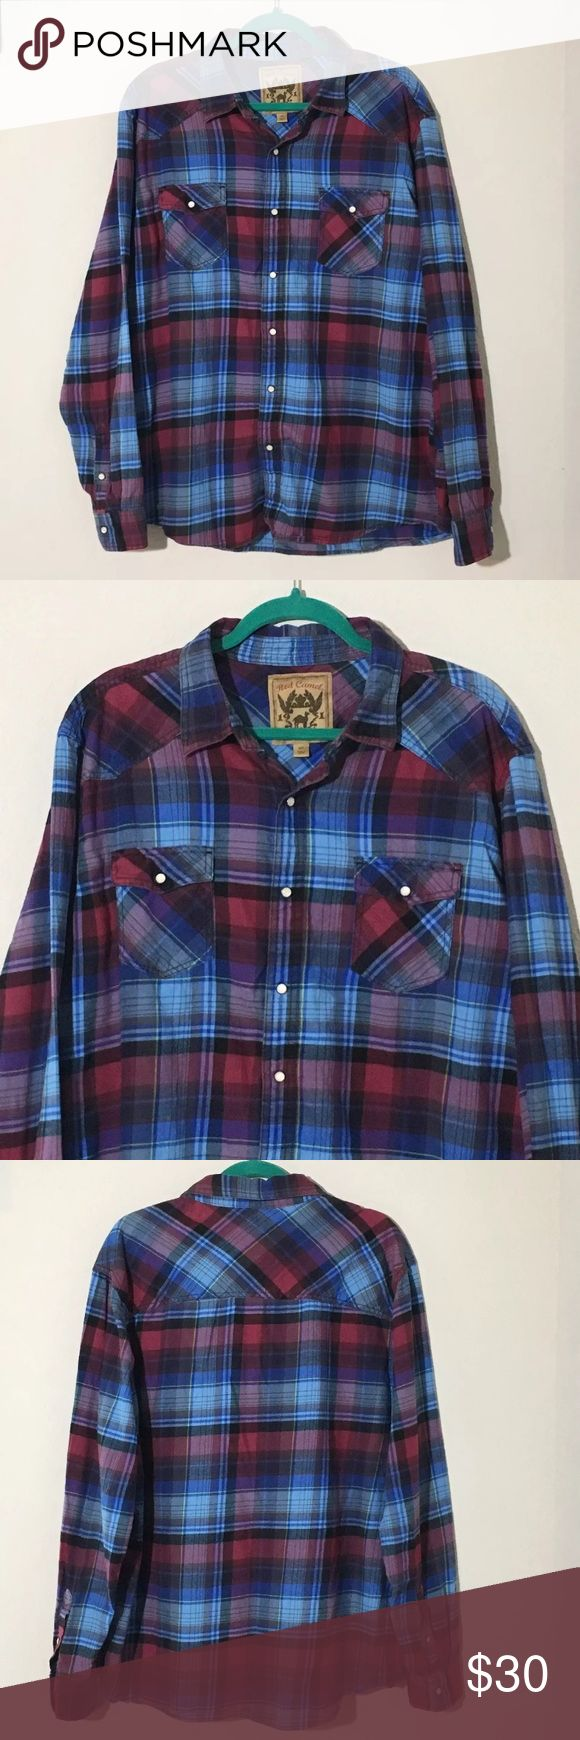 """Blue Red Plaid Snap Button Long Sleeve Shirt XXL Men's Red Camel blue and red plaid long sleeve snap button shirt. Size XXL 26.5"""" armpit to armpit, 29"""" shoulder to hem. Excellent condition no flaws Red Camel Shirts Casual Button Down Shirts"""